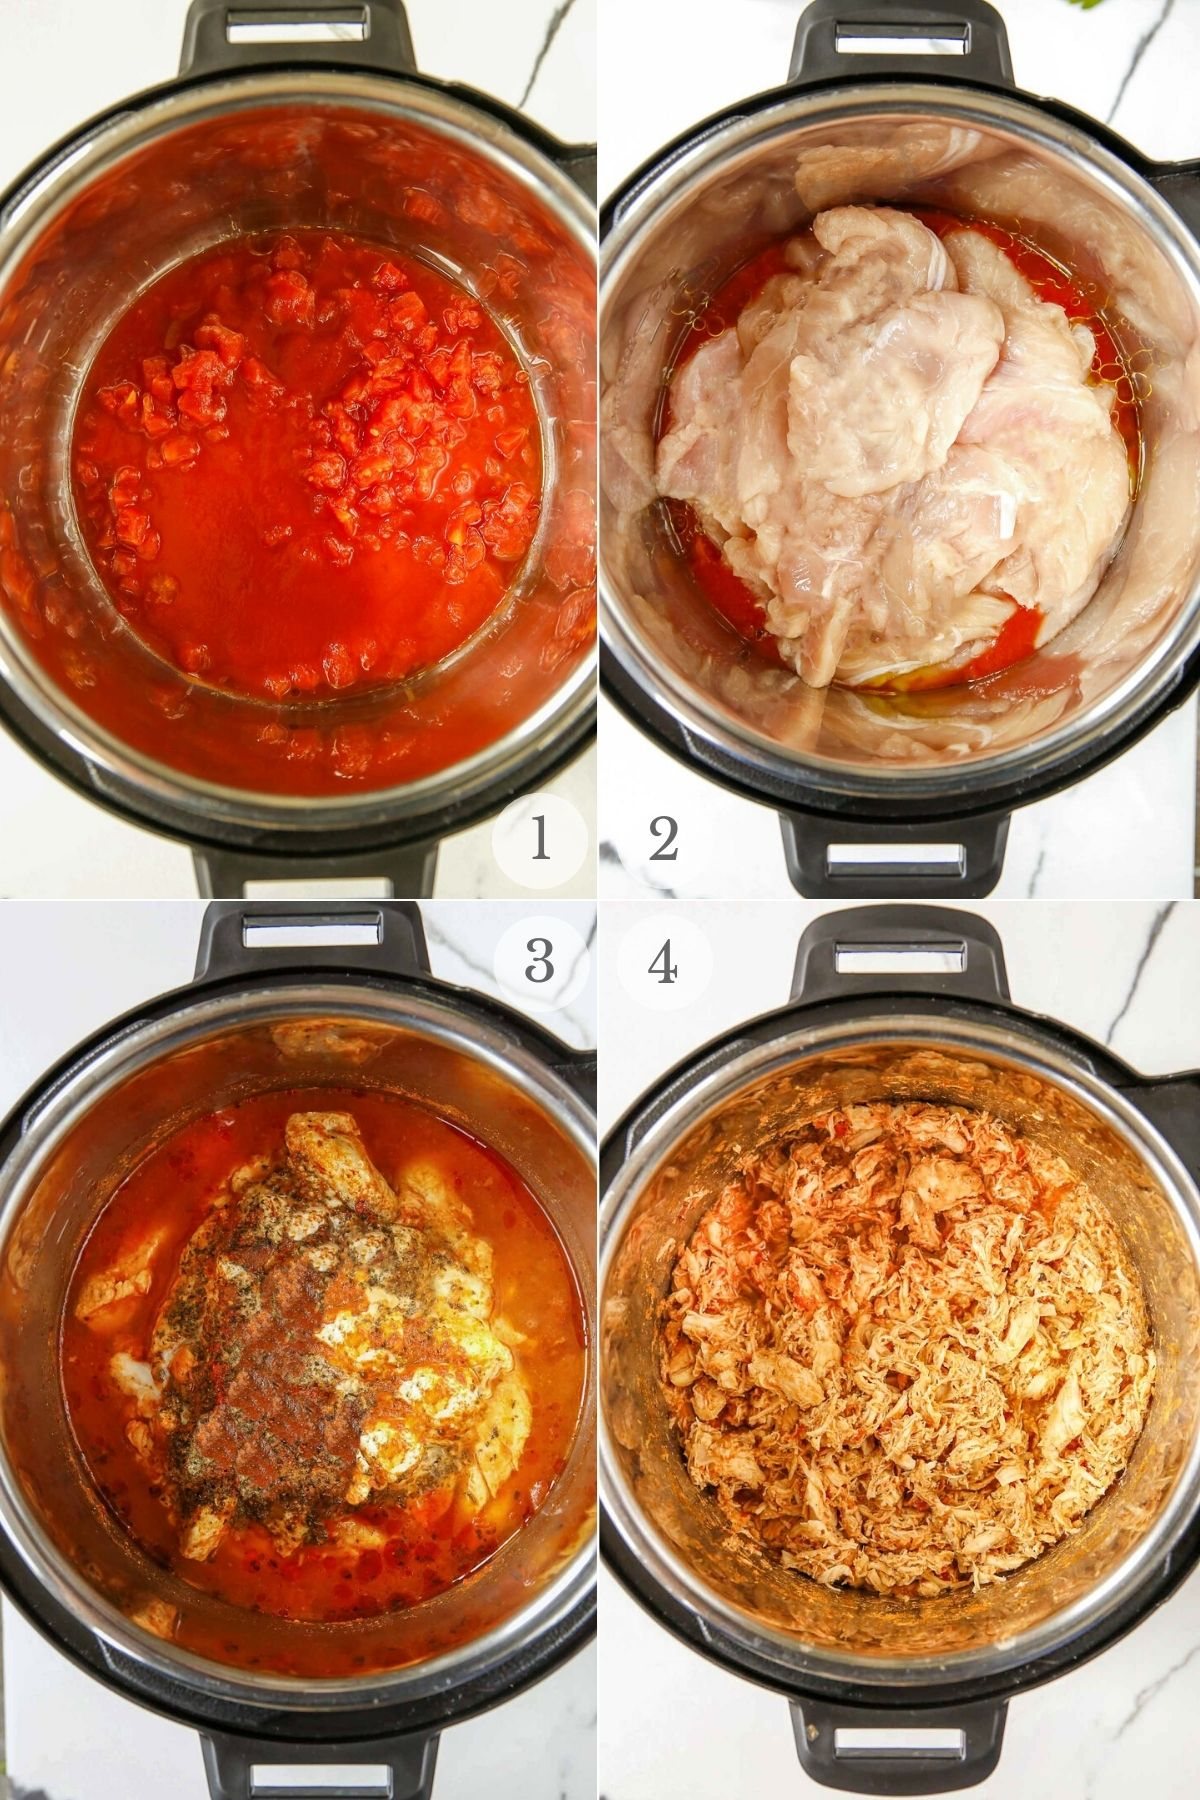 chicken parmesan sliders recipes steps 1-4a